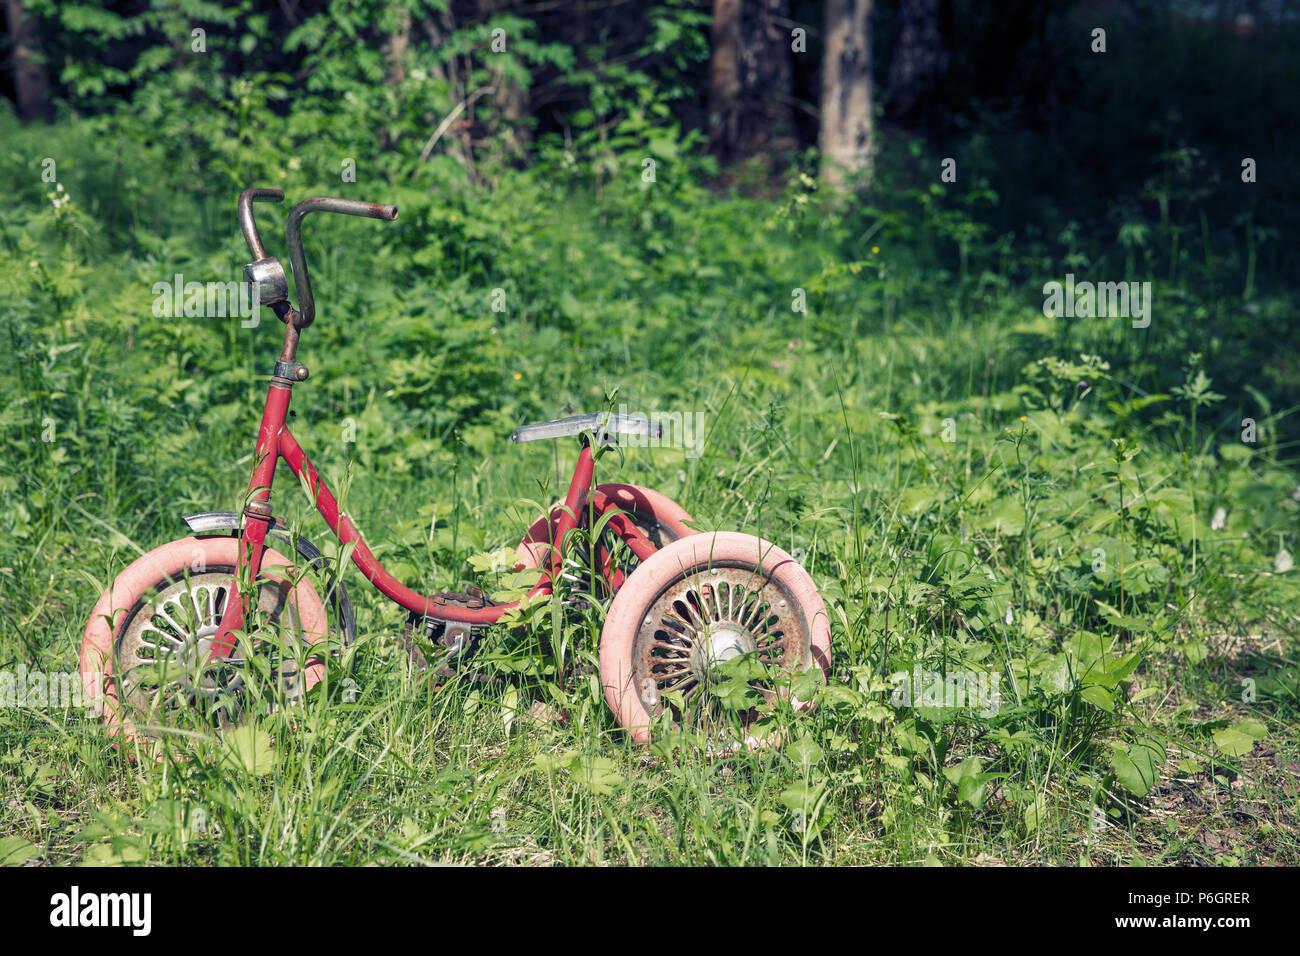 Vintage Tricycle High Resolution Stock Photography And Images Alamy